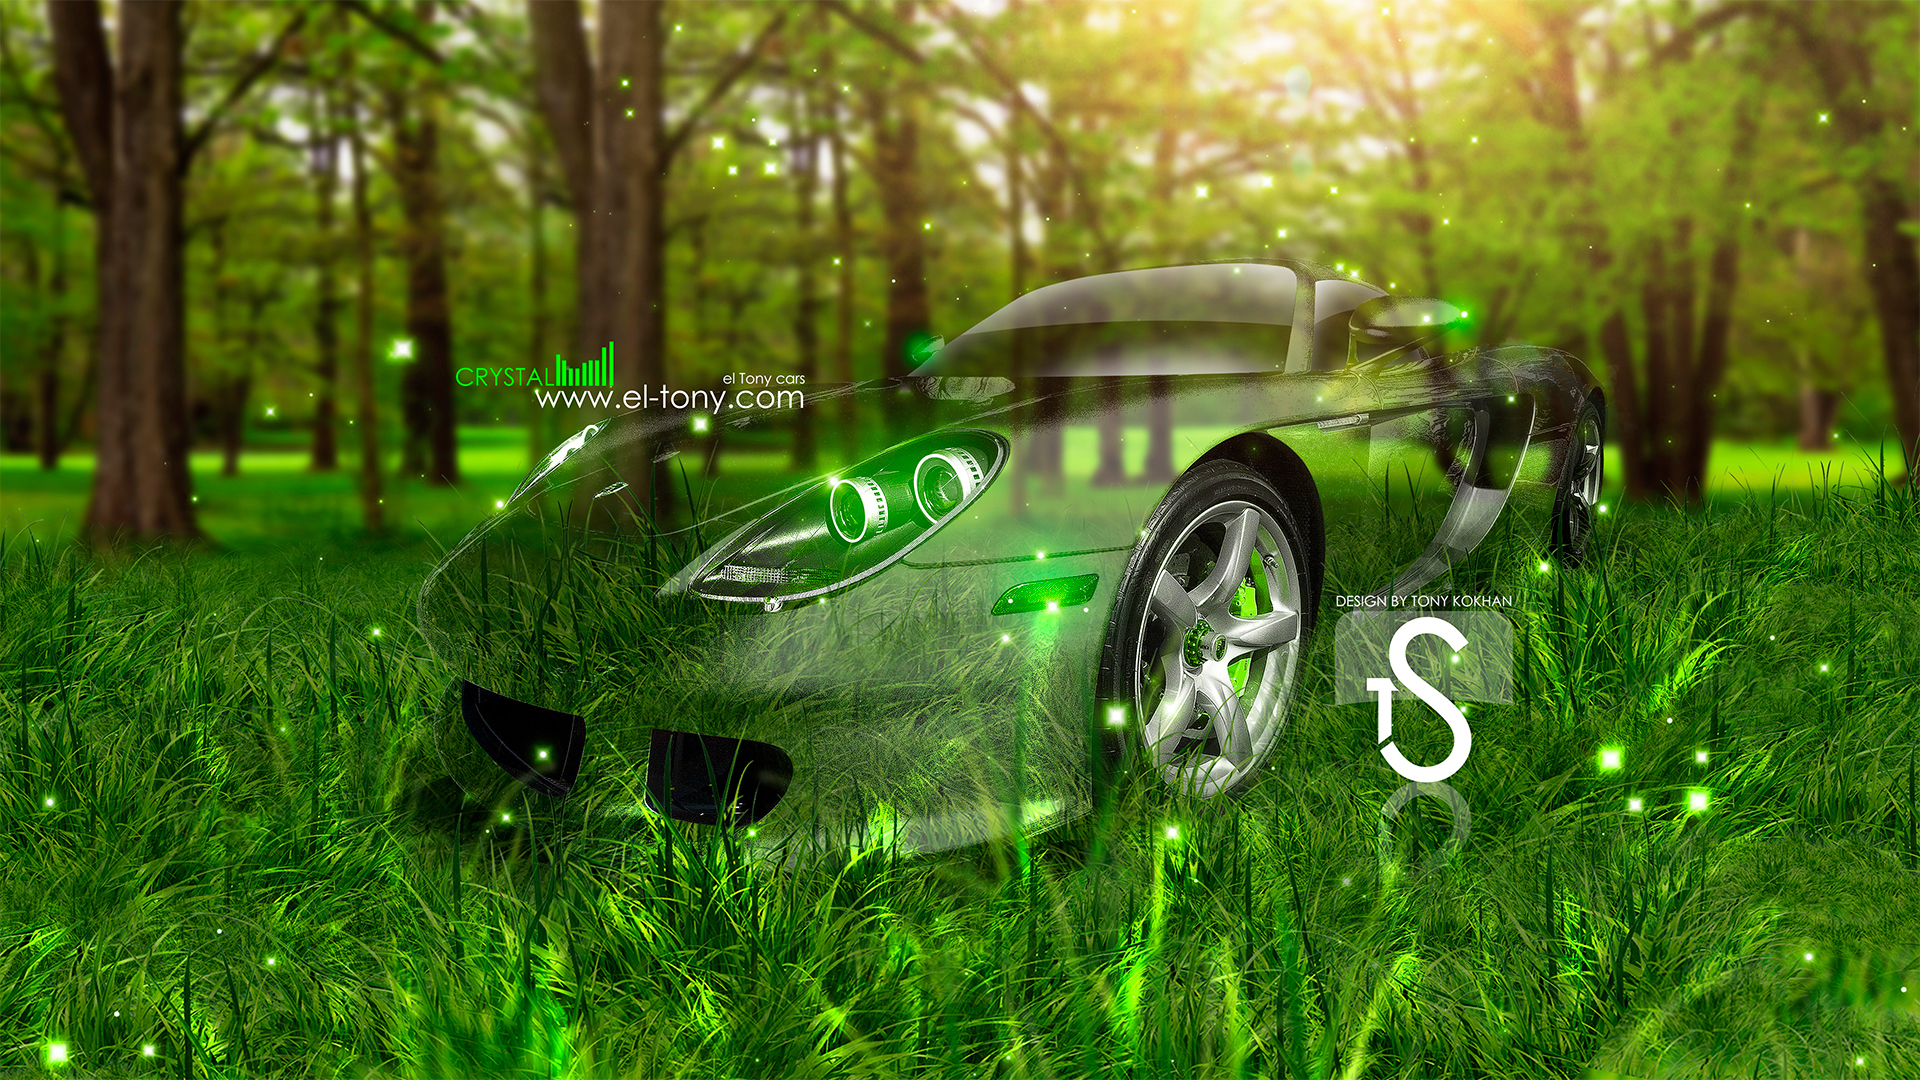 Porsche Carrera GT Crystal Car  2013 Nature Green Grass HD Wallpapers Design By Tony Kokhan [www.el Tony.com]